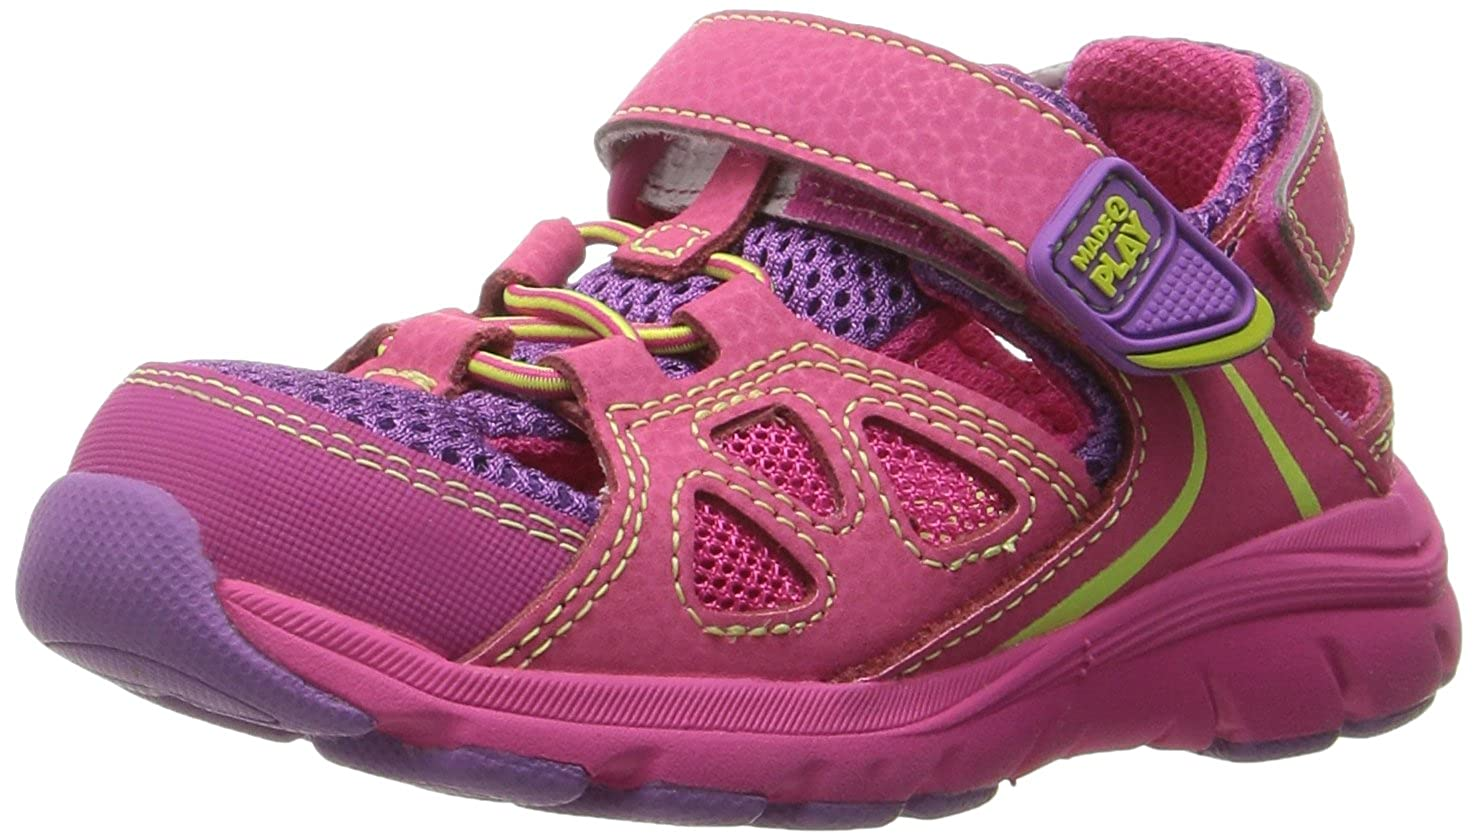 K Stride Rite Made 2 Play Scout Water Shoe Made 2 Play Scout